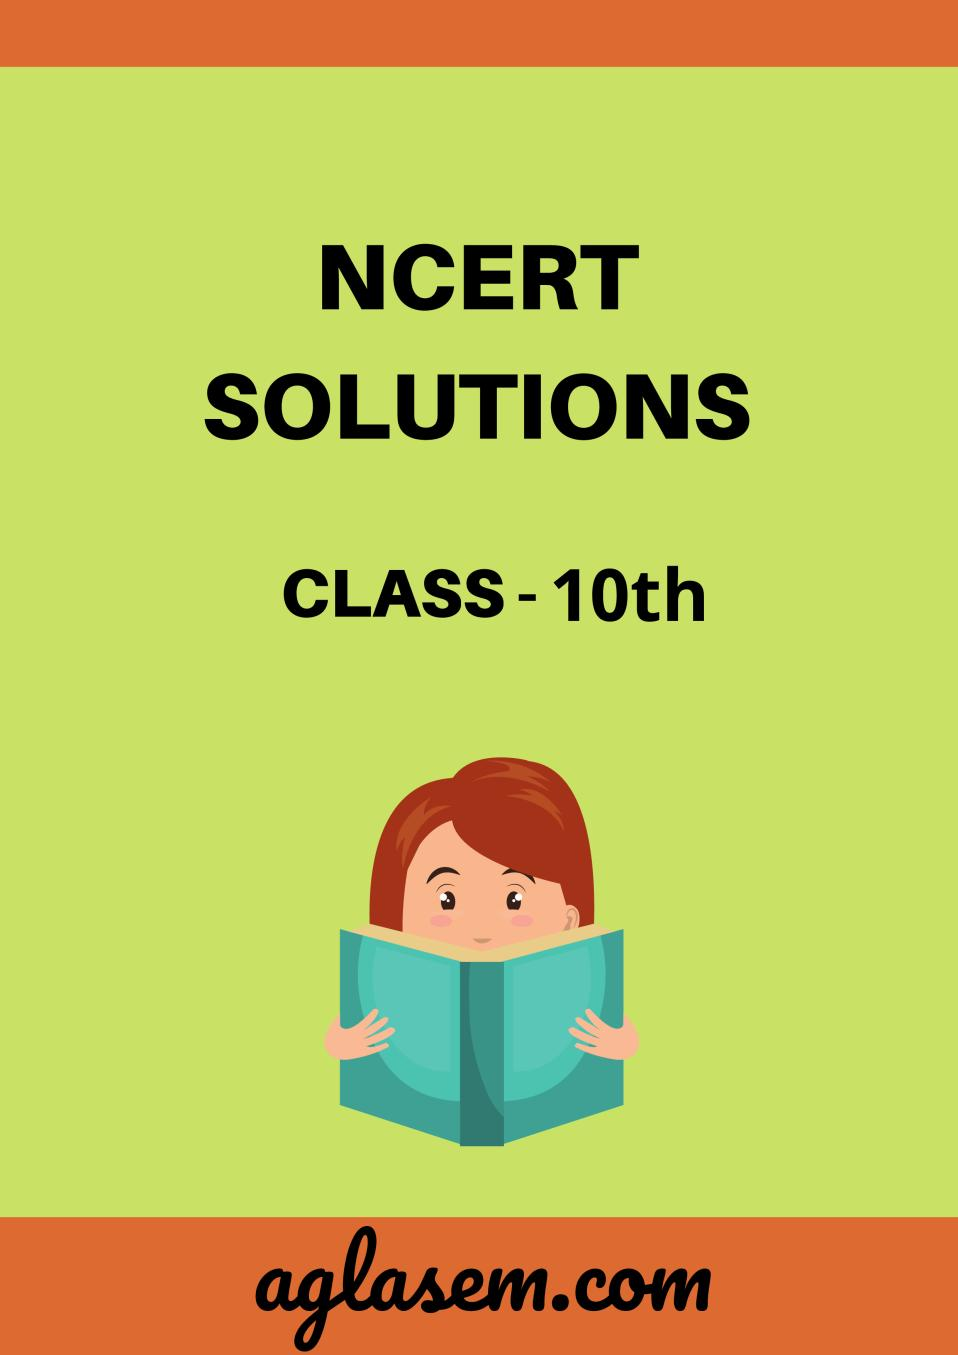 NCERT Solutions for Class 10 Social Science Geography Chapter 1 Resources and Development